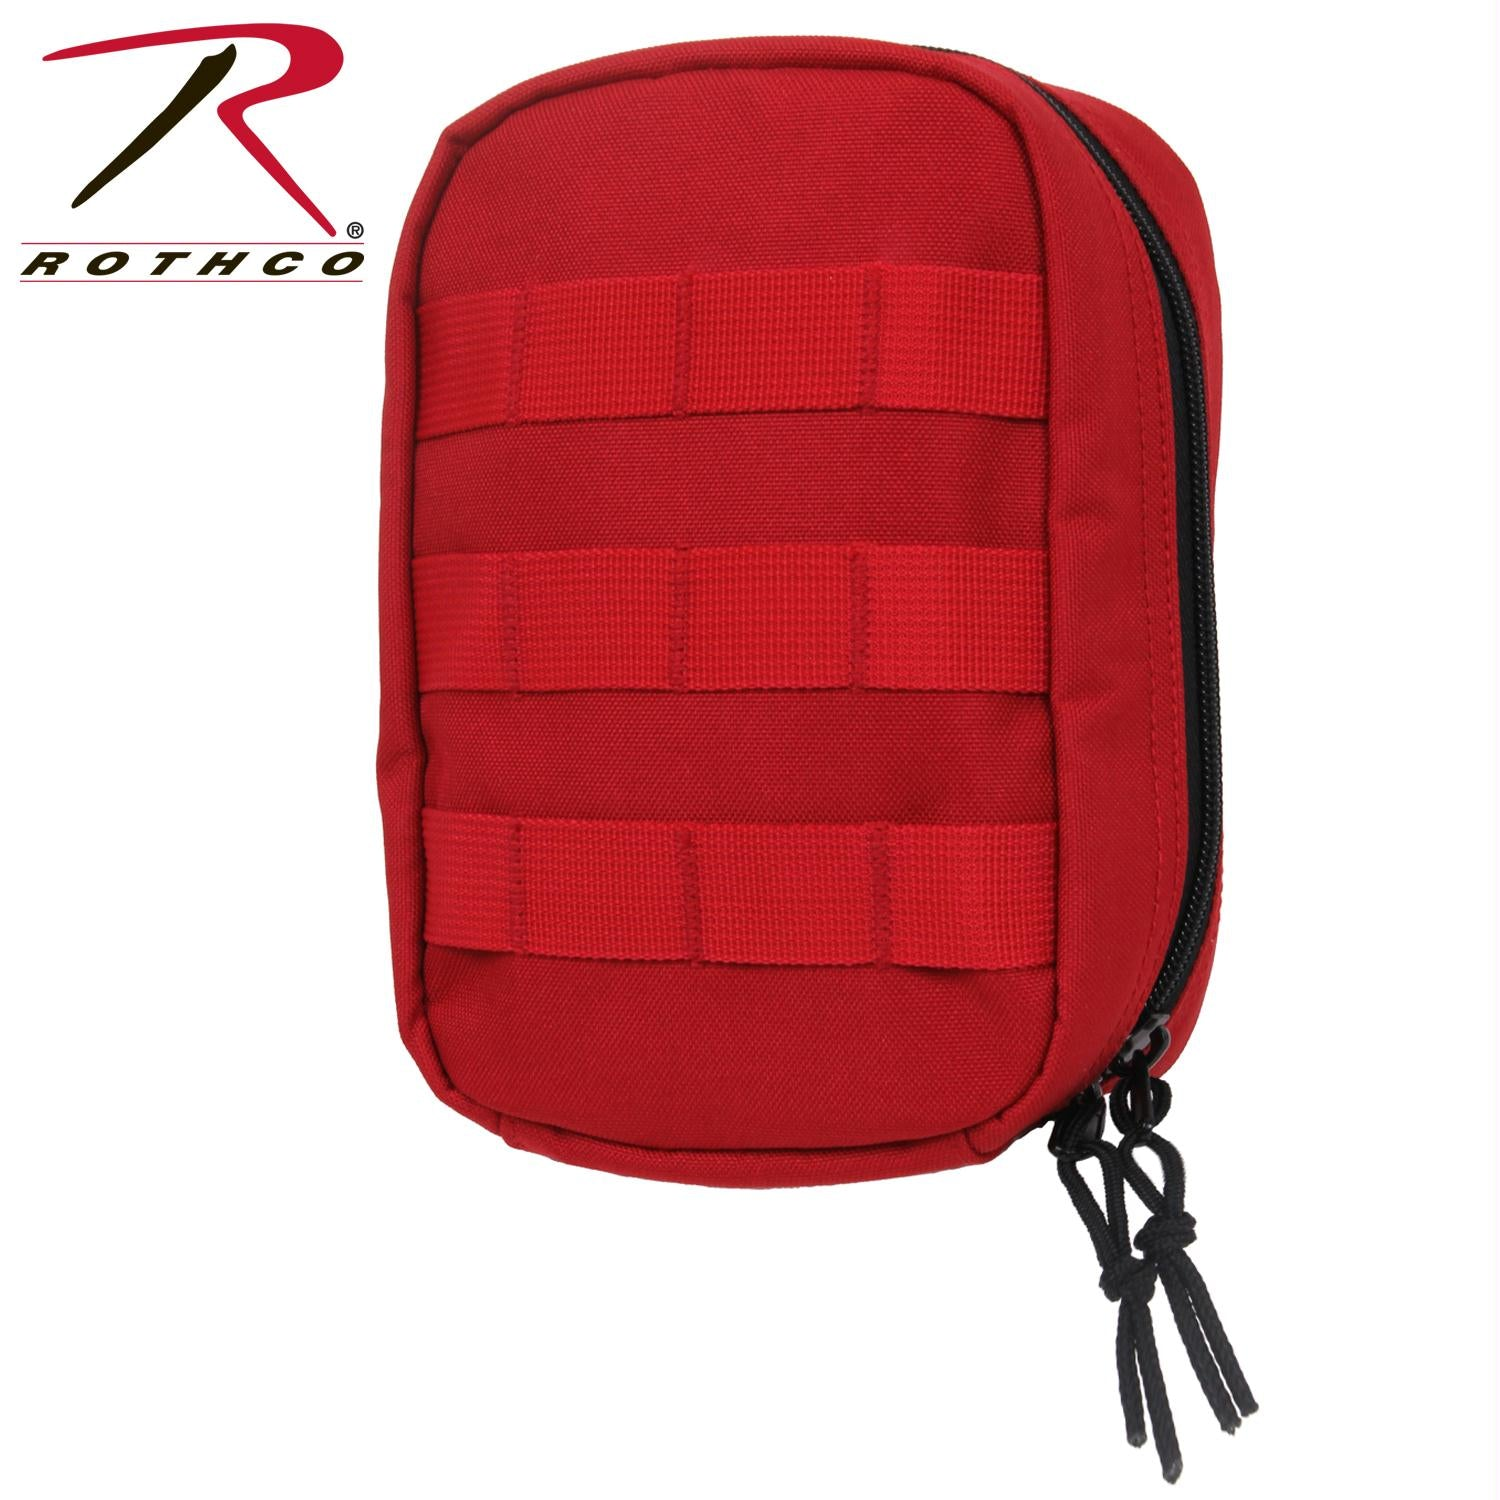 Rothco MOLLE Tactical First Aid Kit - Red